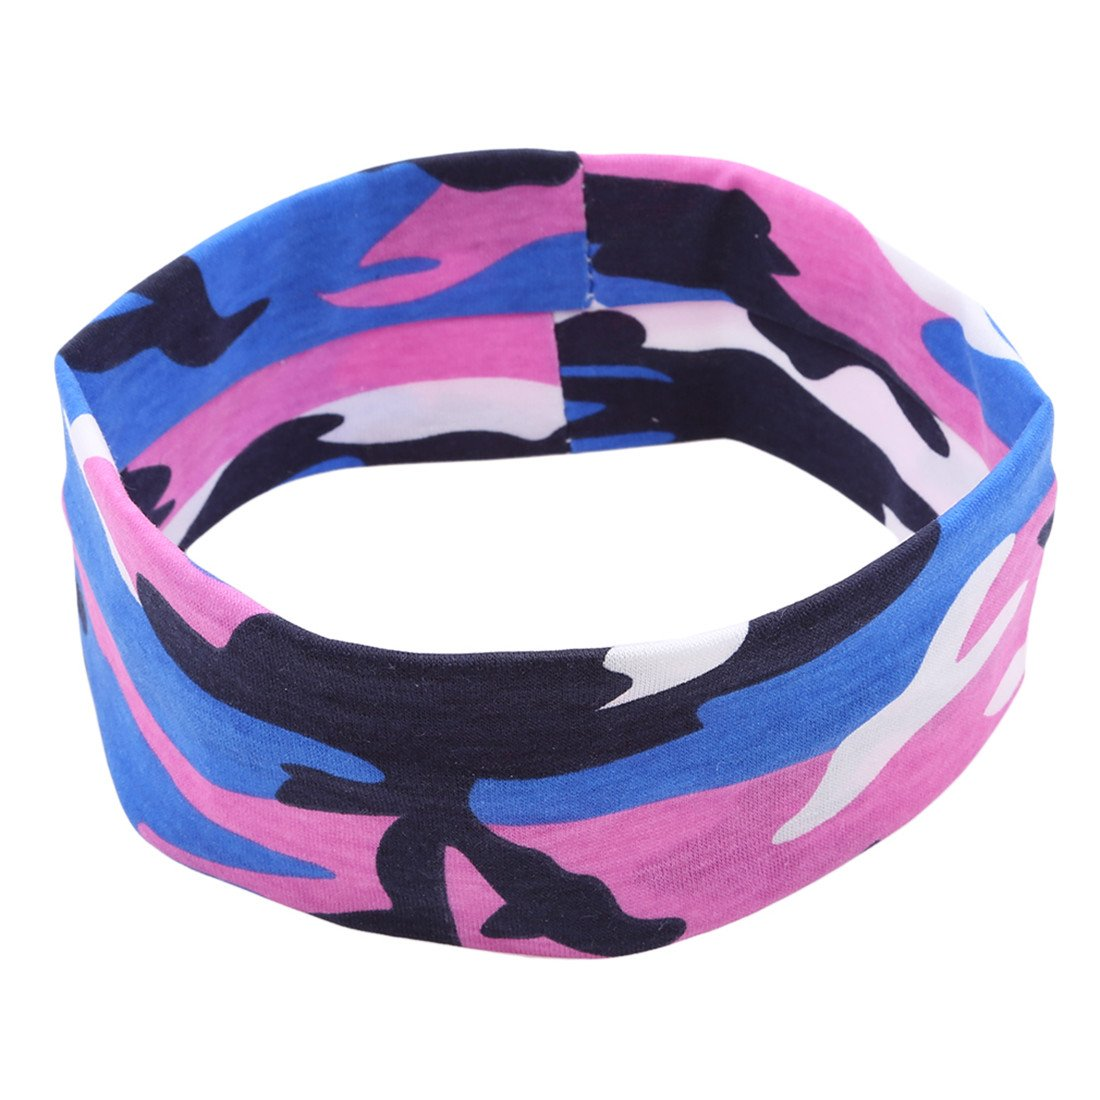 VWH Cotton Elastic Sport Headband Stretch Hairband for Running Workout Yoga Fitness (Rose red)